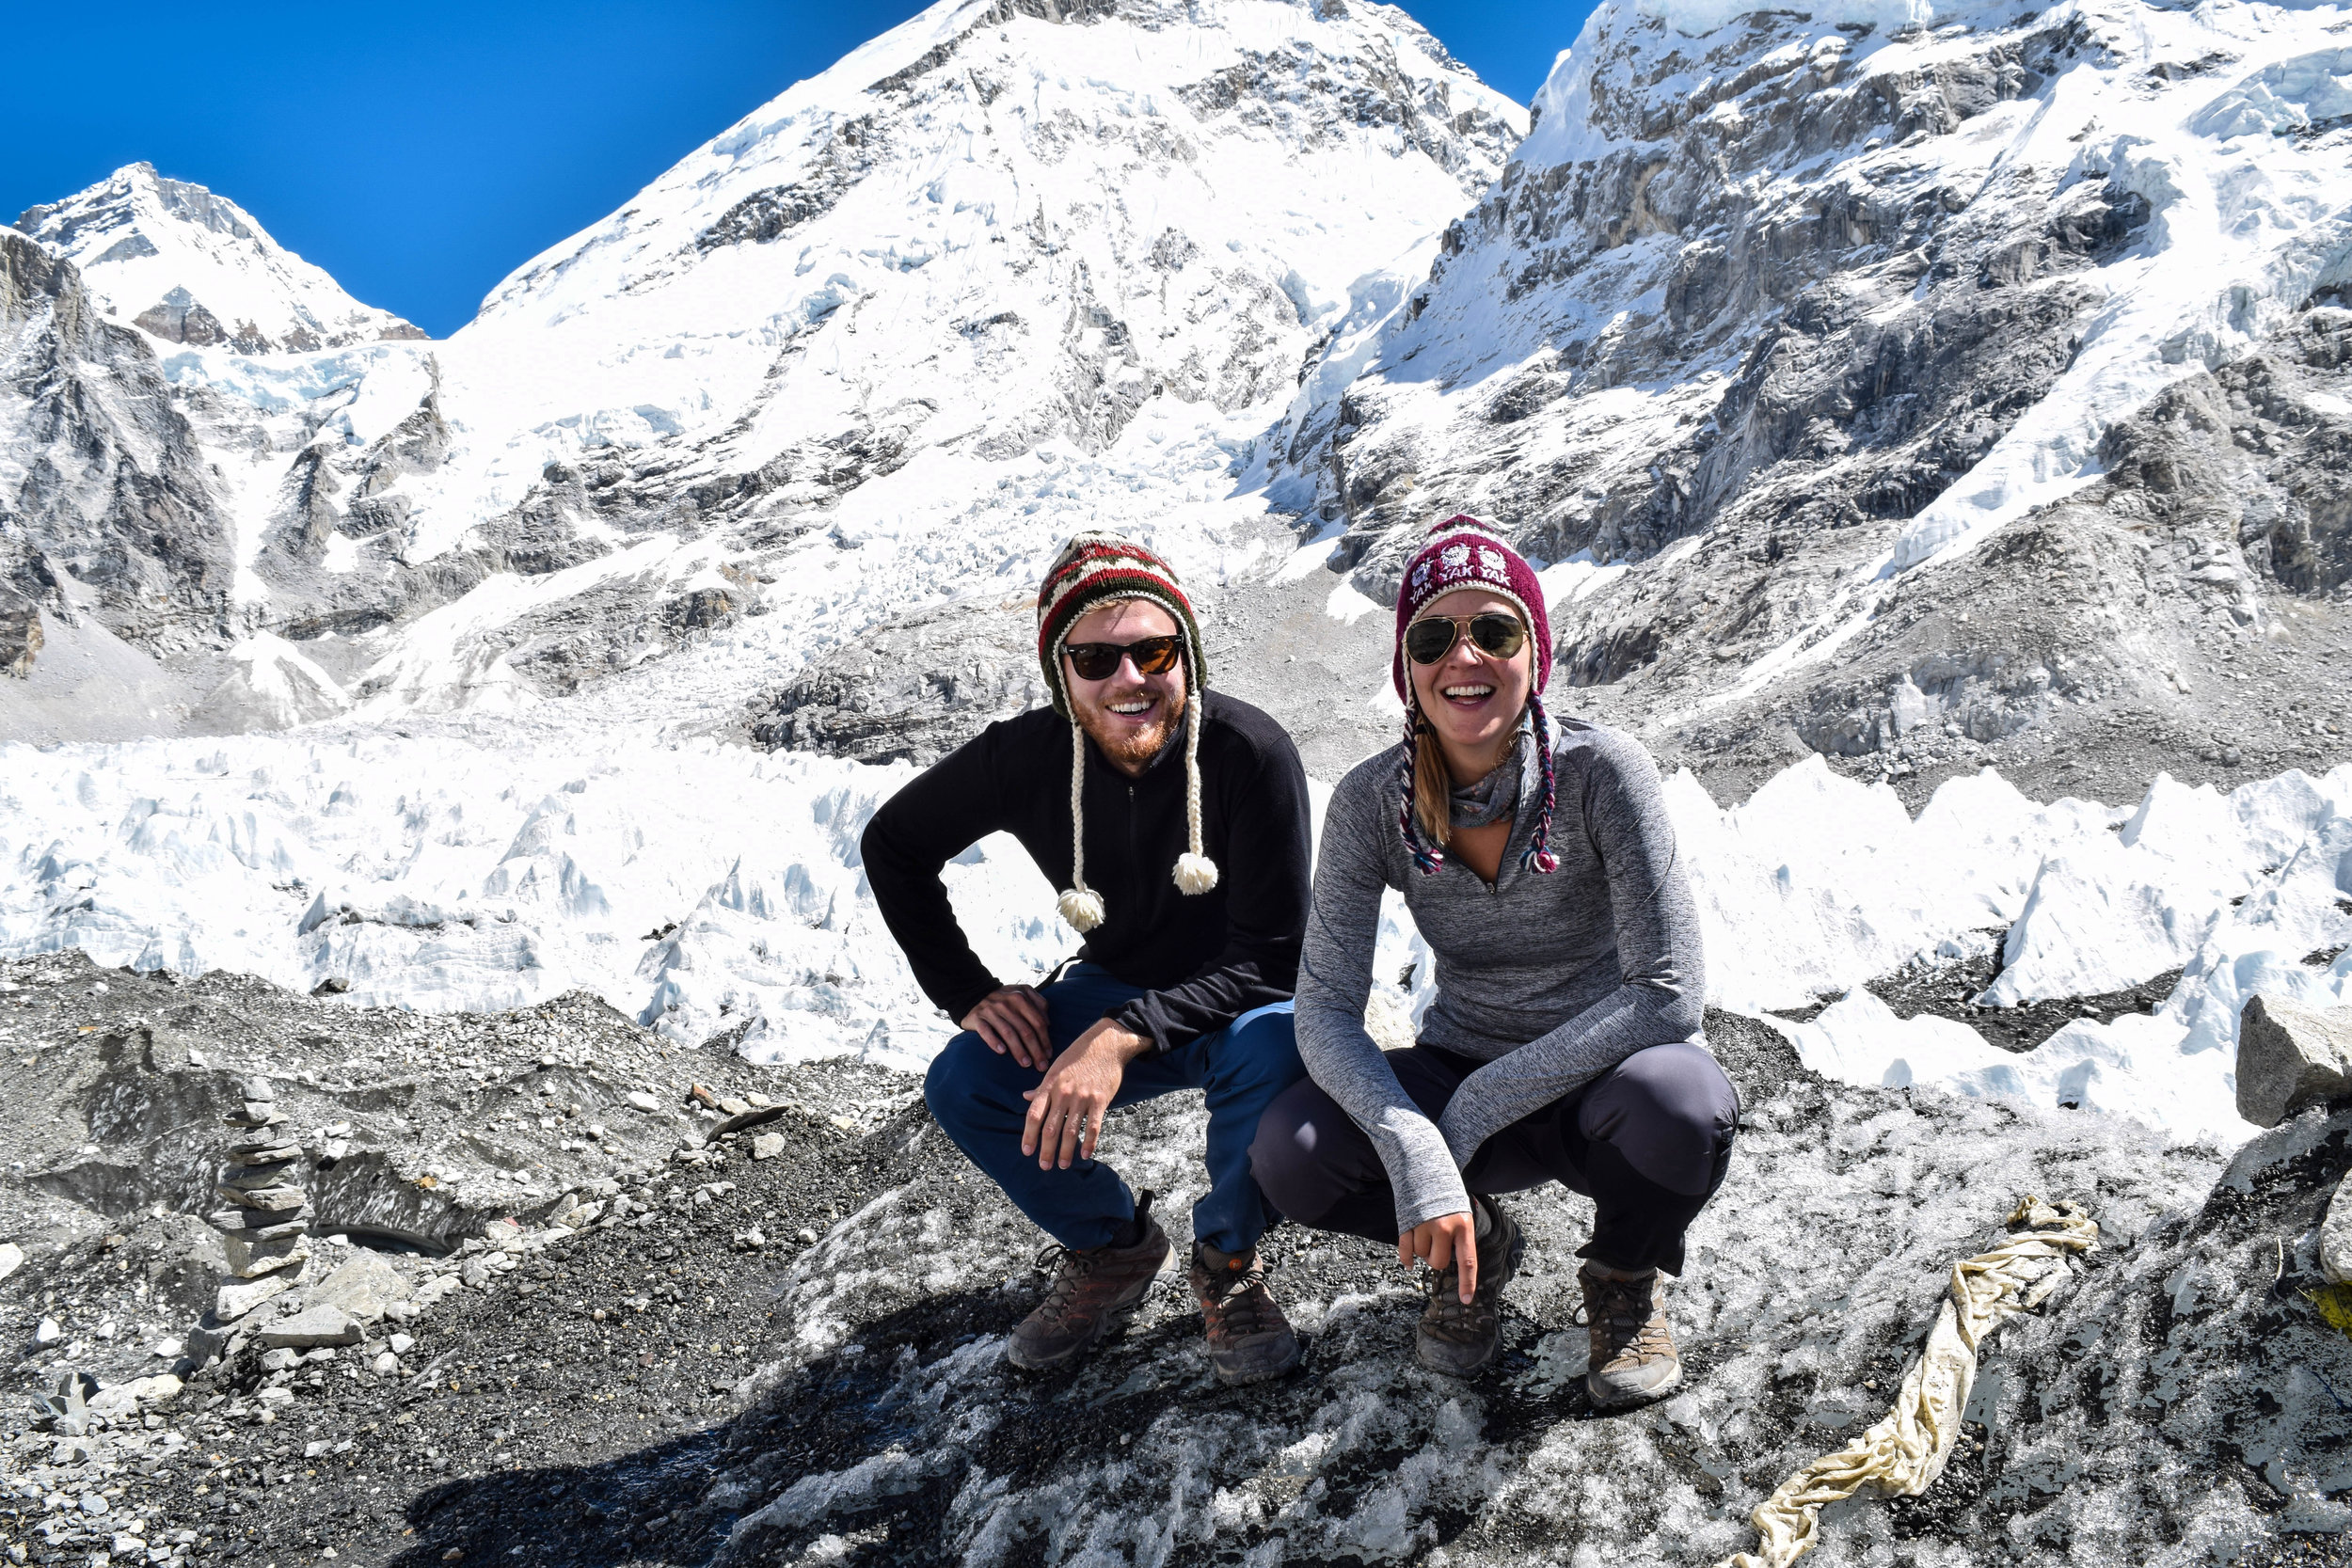 Behind us is the Khumbu Icefall, and we look really happy only because we know we'll never have to cross it.